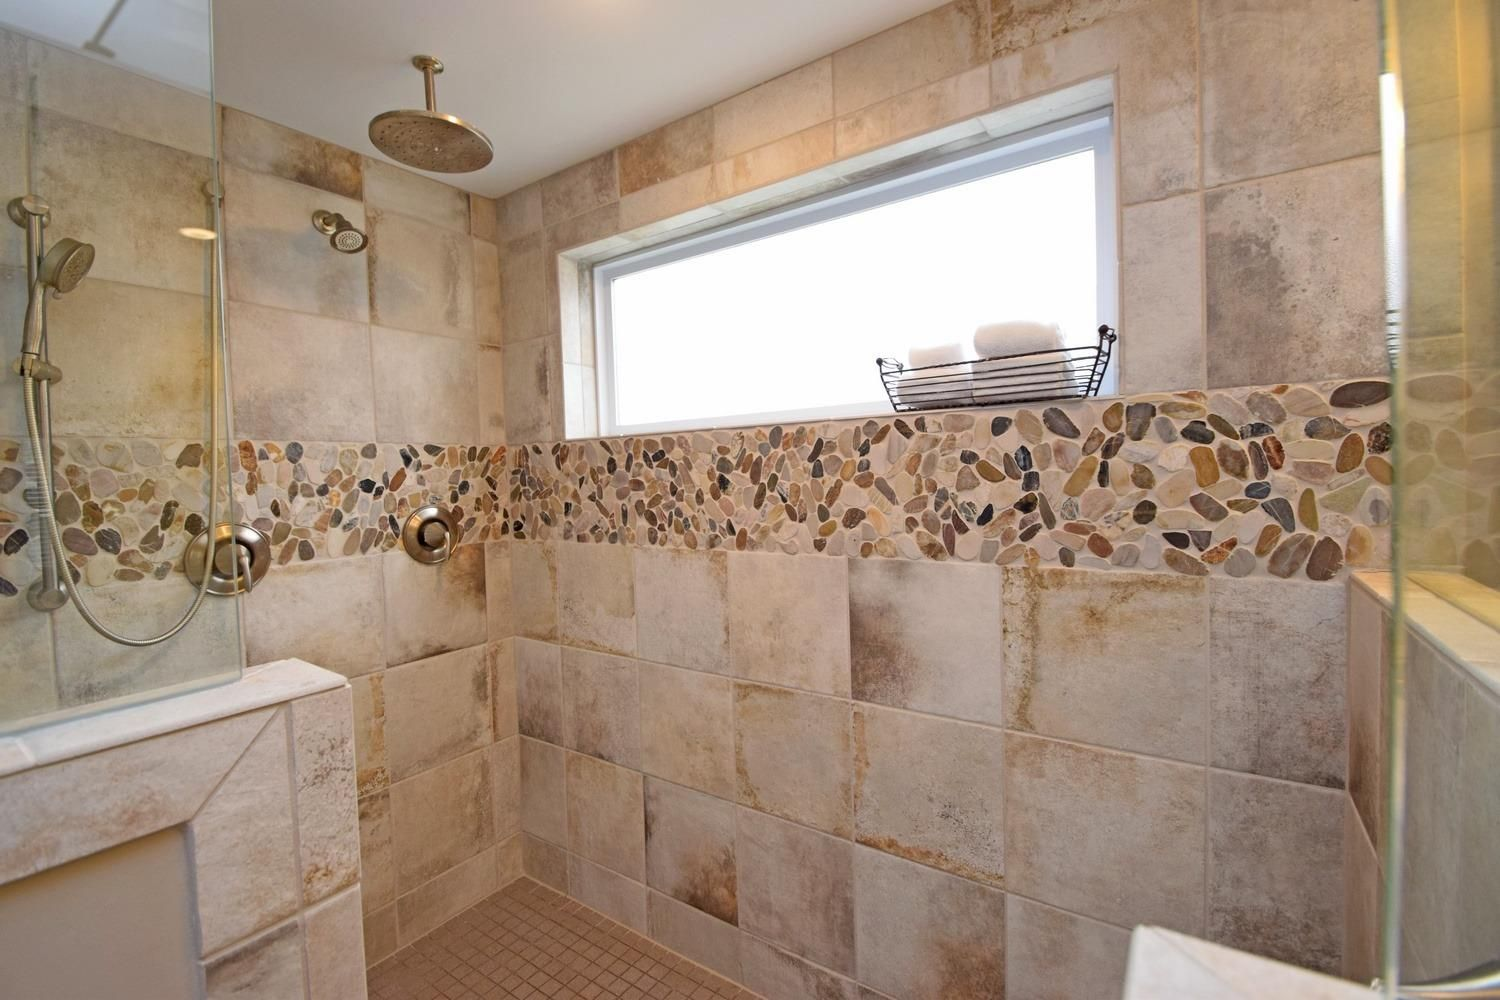 Cotto Contempo Pennsylvania Ave 13x13 Wall Tile Shower Remodel Bathroom Remodel Shower Wall Tiles